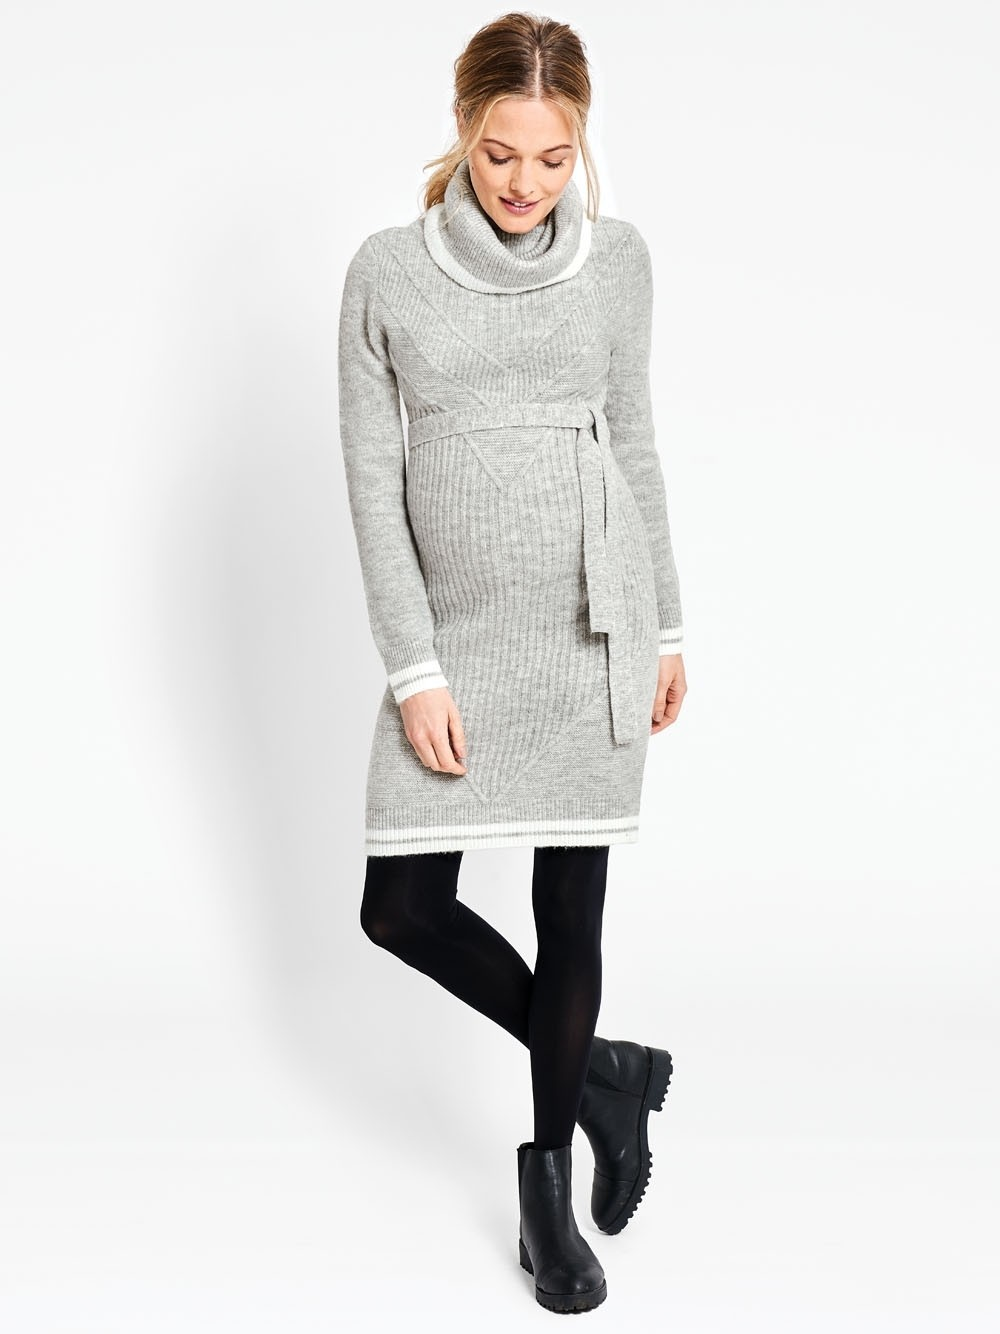 Marl Grey Roll Neck Maternity Jumper Dress